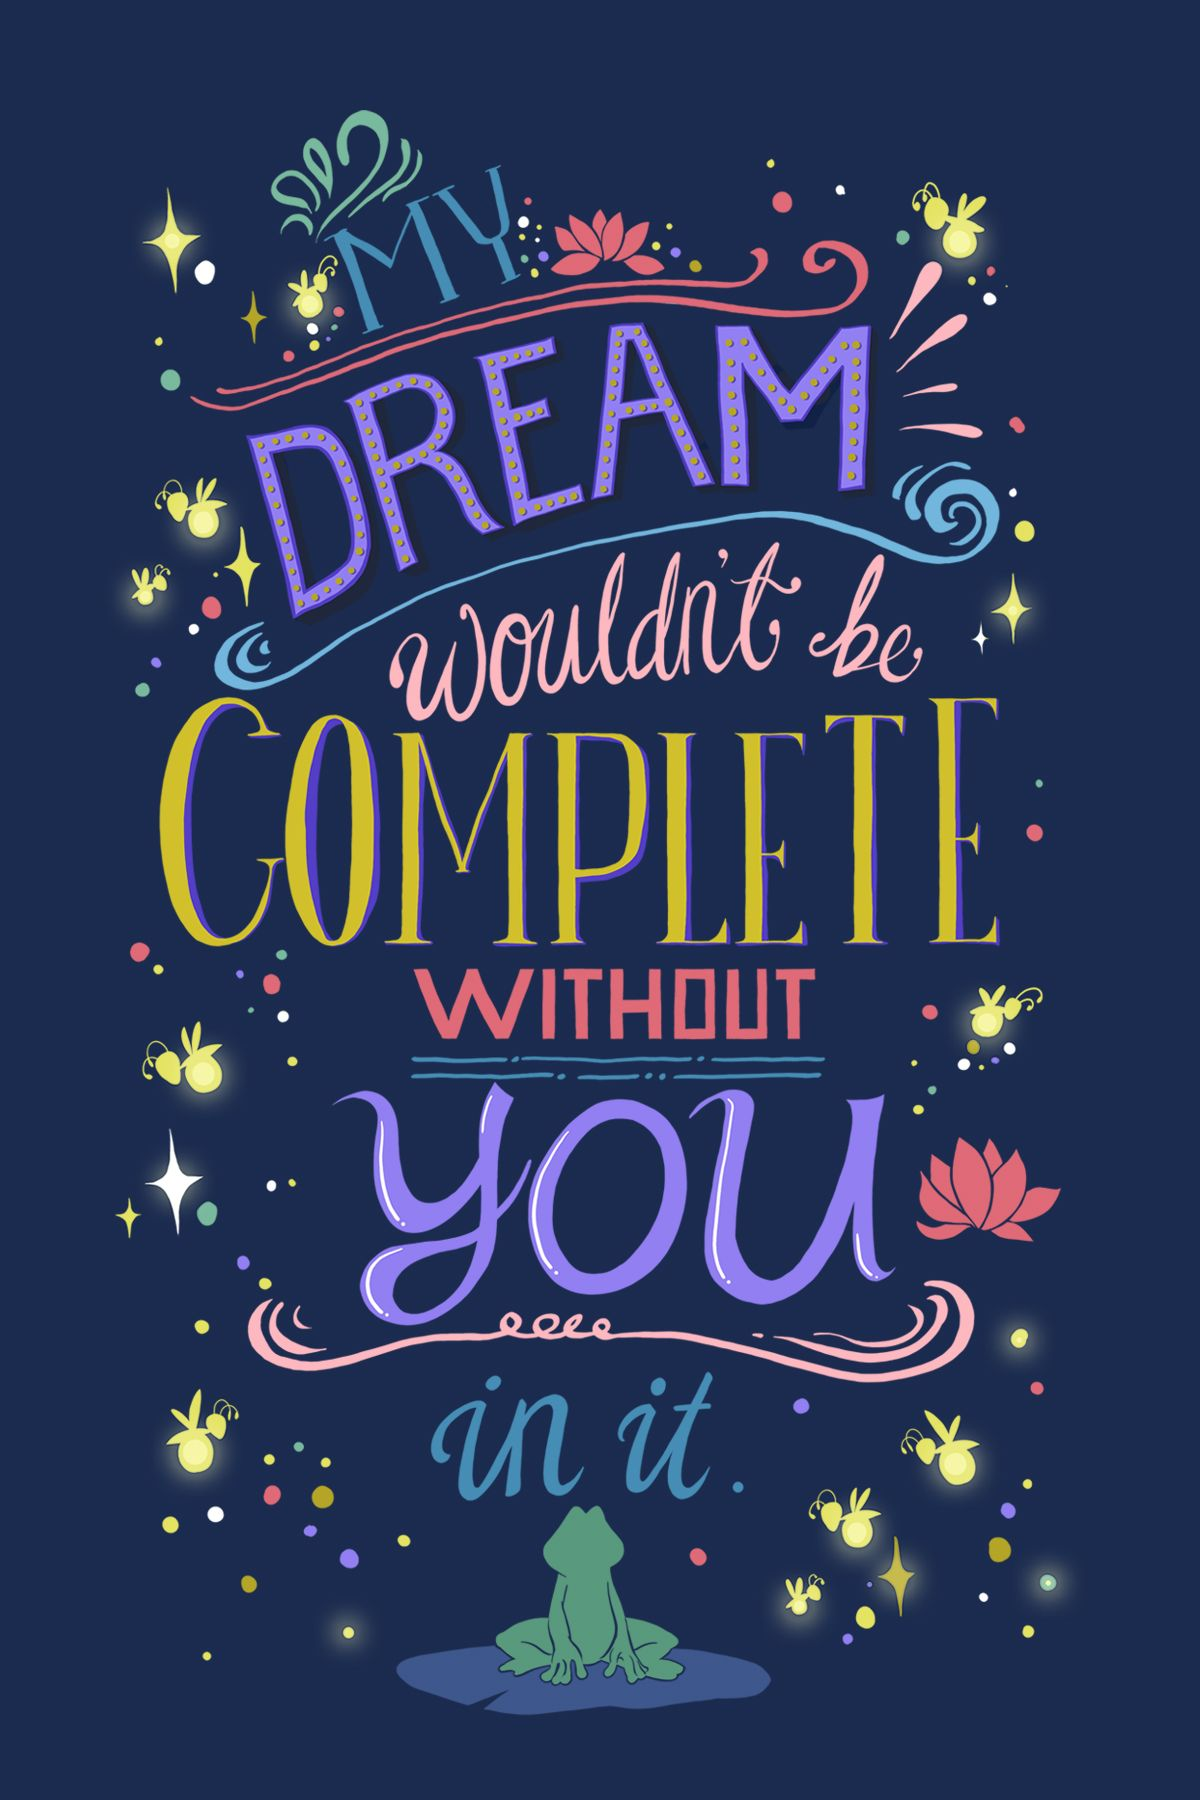 Disney Love Quotes Http68Diatumblr17A6E4Da61566F23Feac4D7C6C5E7C93